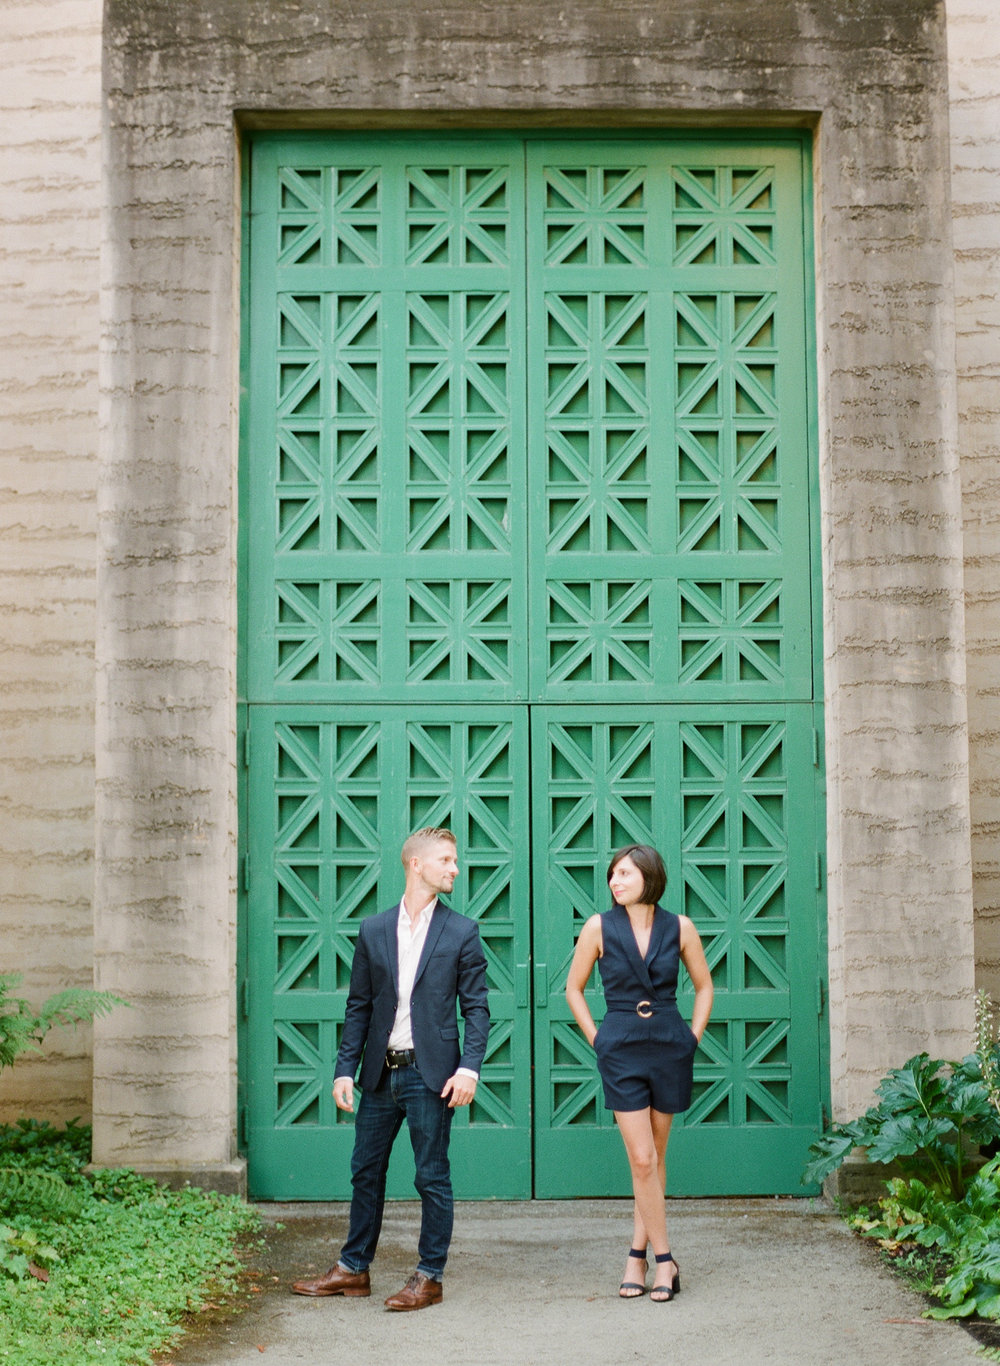 San Francisco Engagement Session Film Photographer 09.jpg